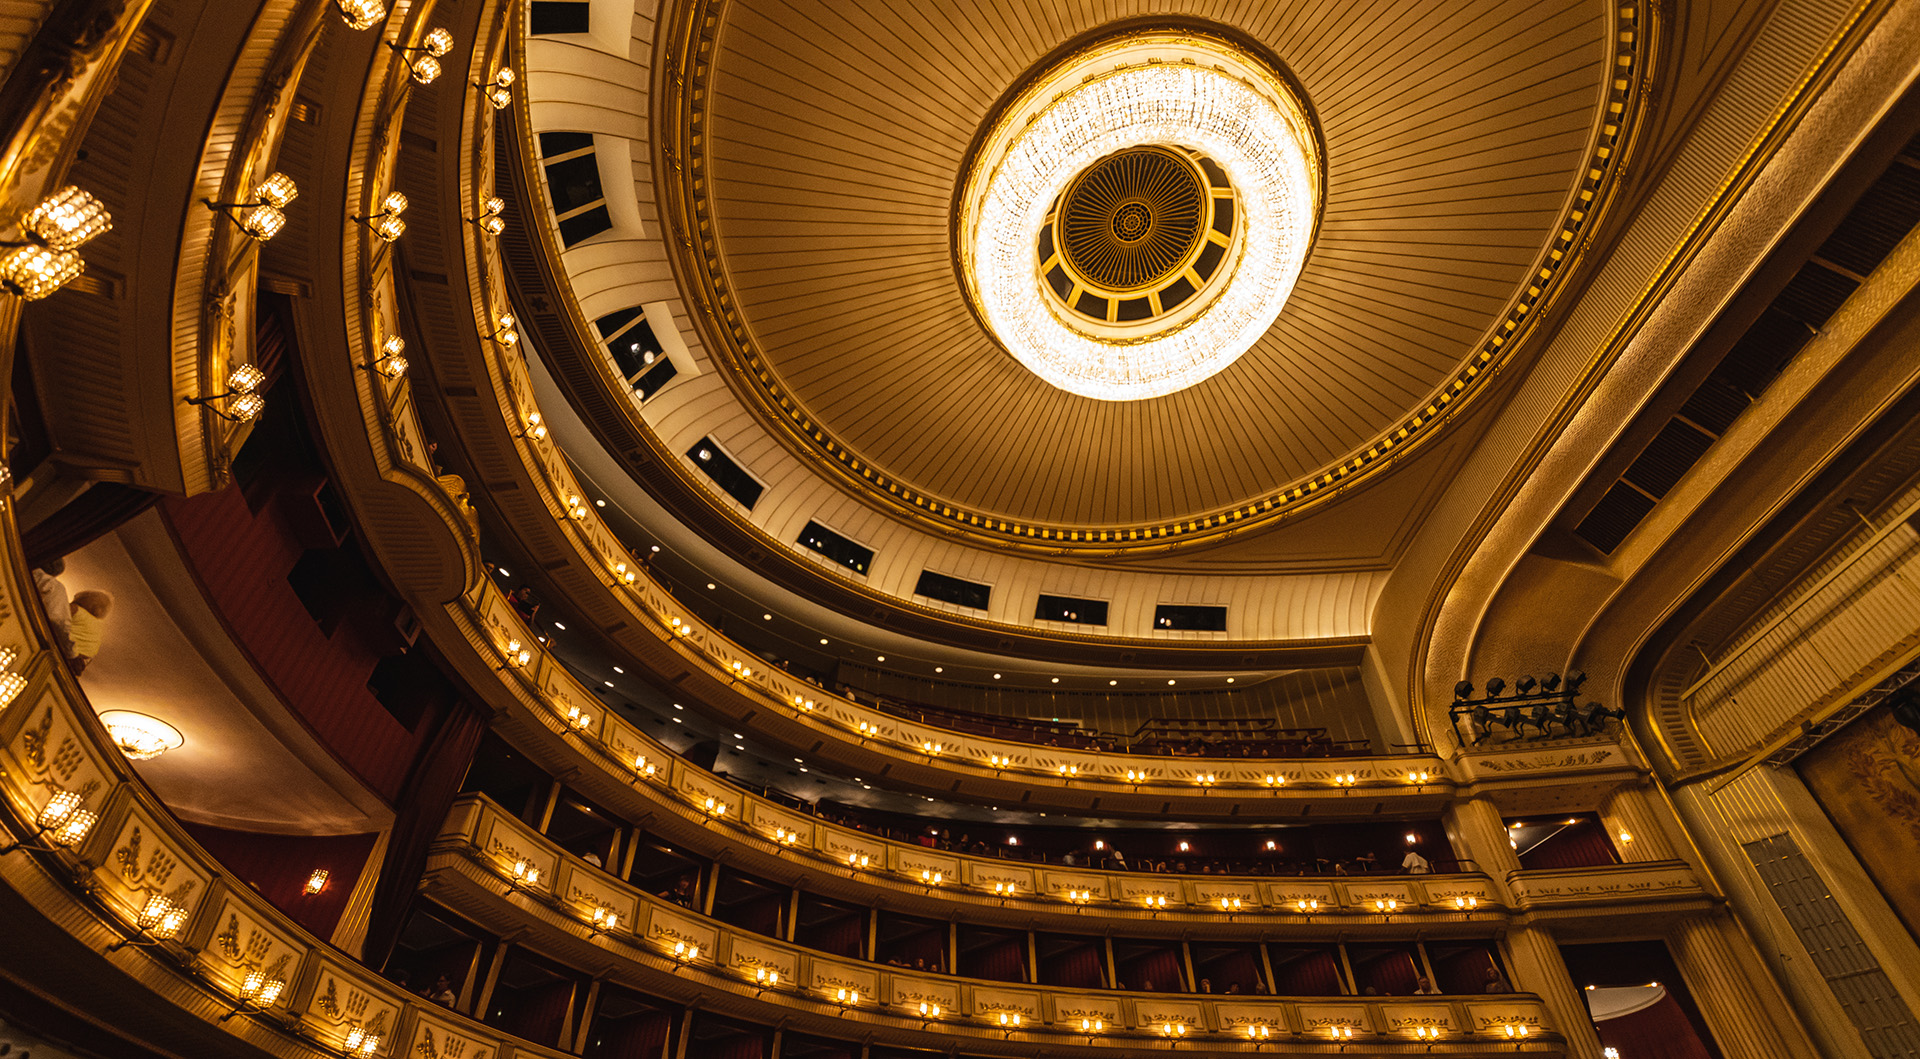 loges and ceiling lighting of the Vienna State Opera